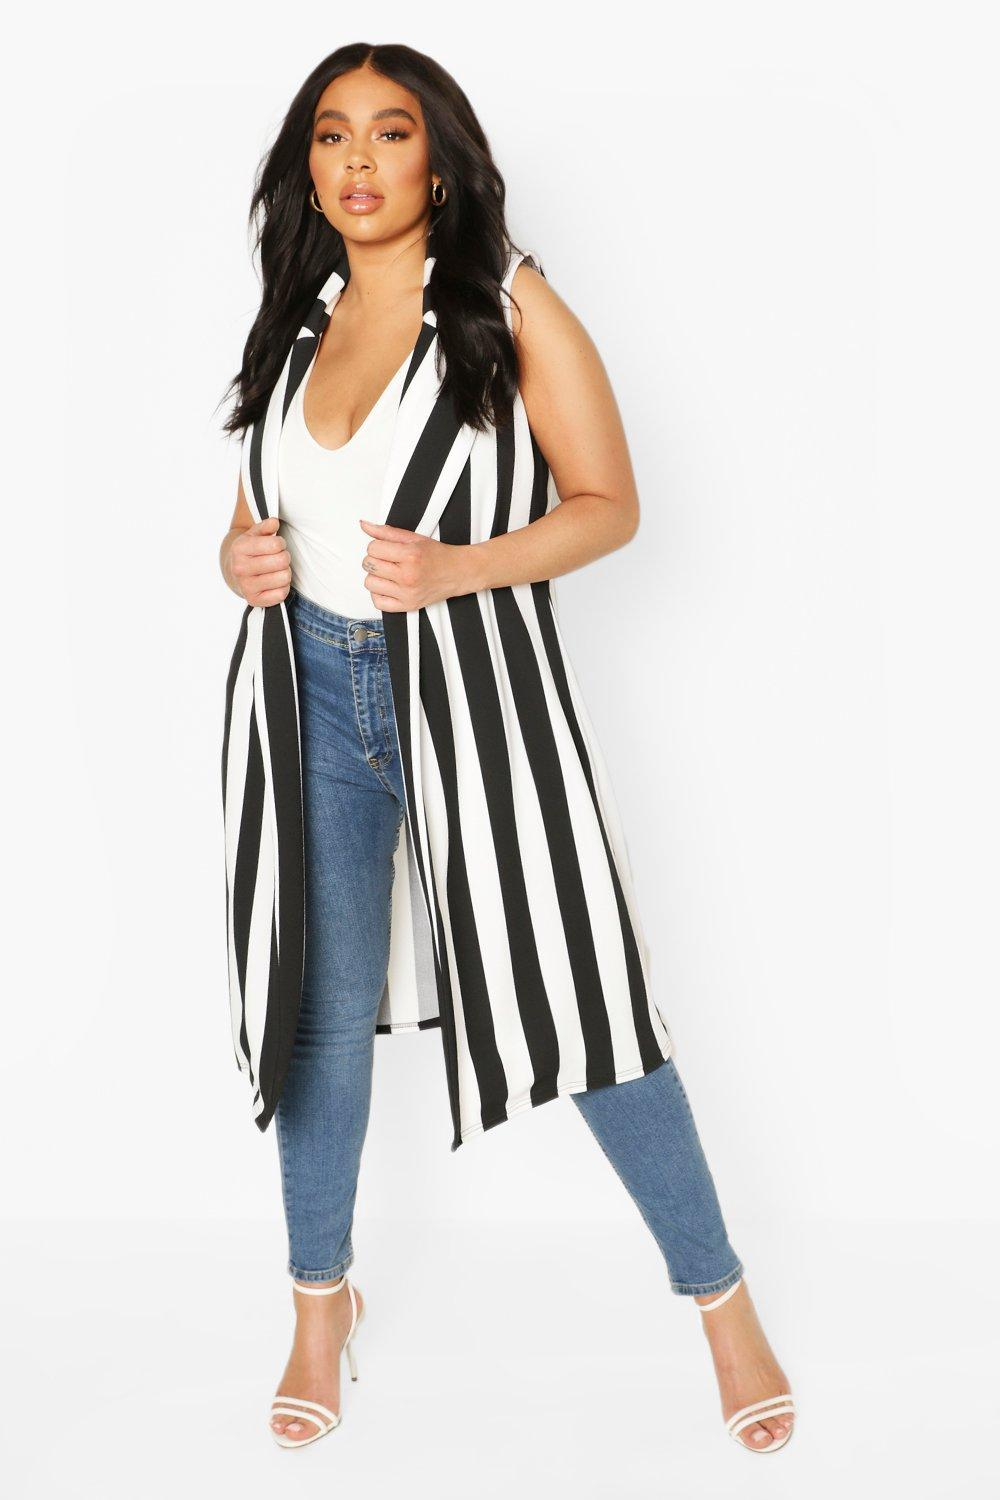 boohoo Womens Plus Stripe Sleevless Duster - Black - 20, Black